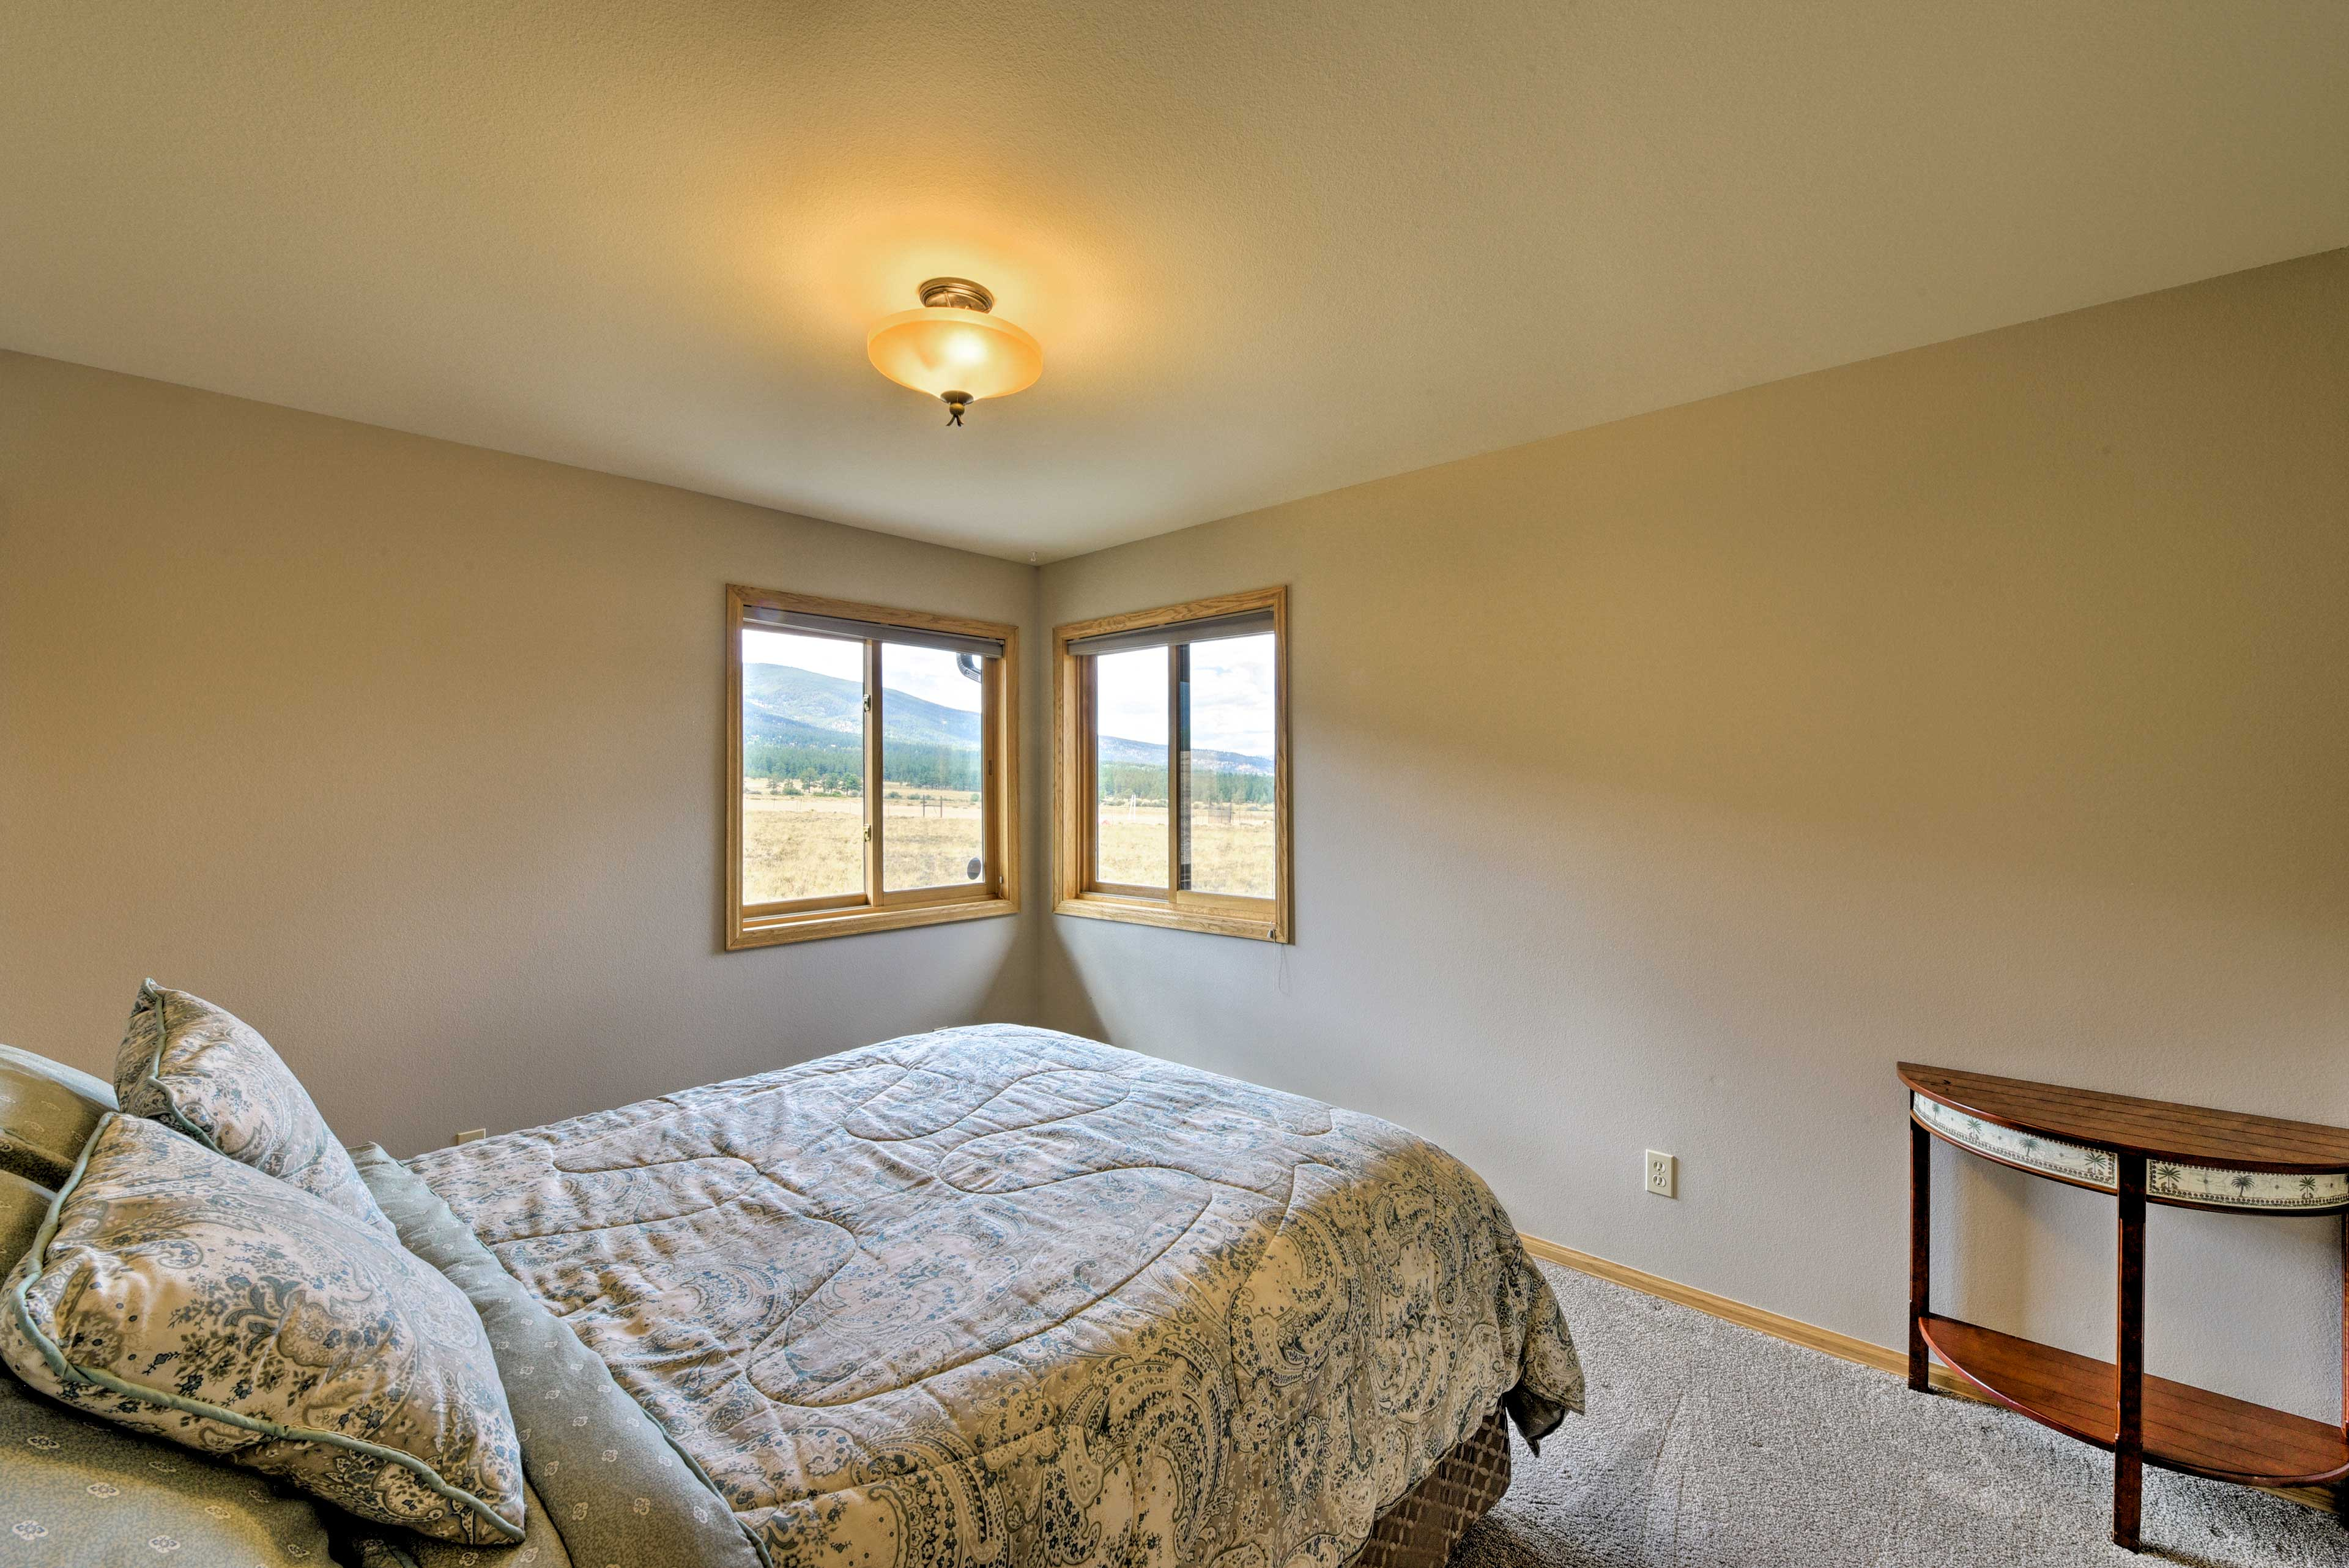 This third bedroom houses a queen-sized bed.